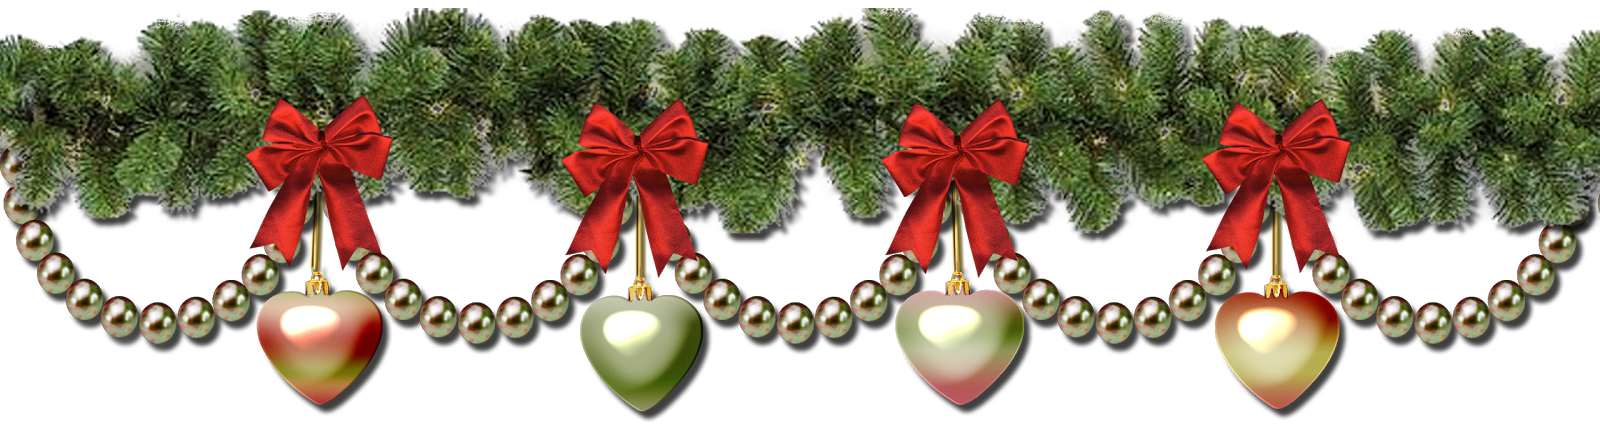 Christmas bough clipart jpg 28+ Collection of Christmas Wreath Border Clipart | High quality ... jpg